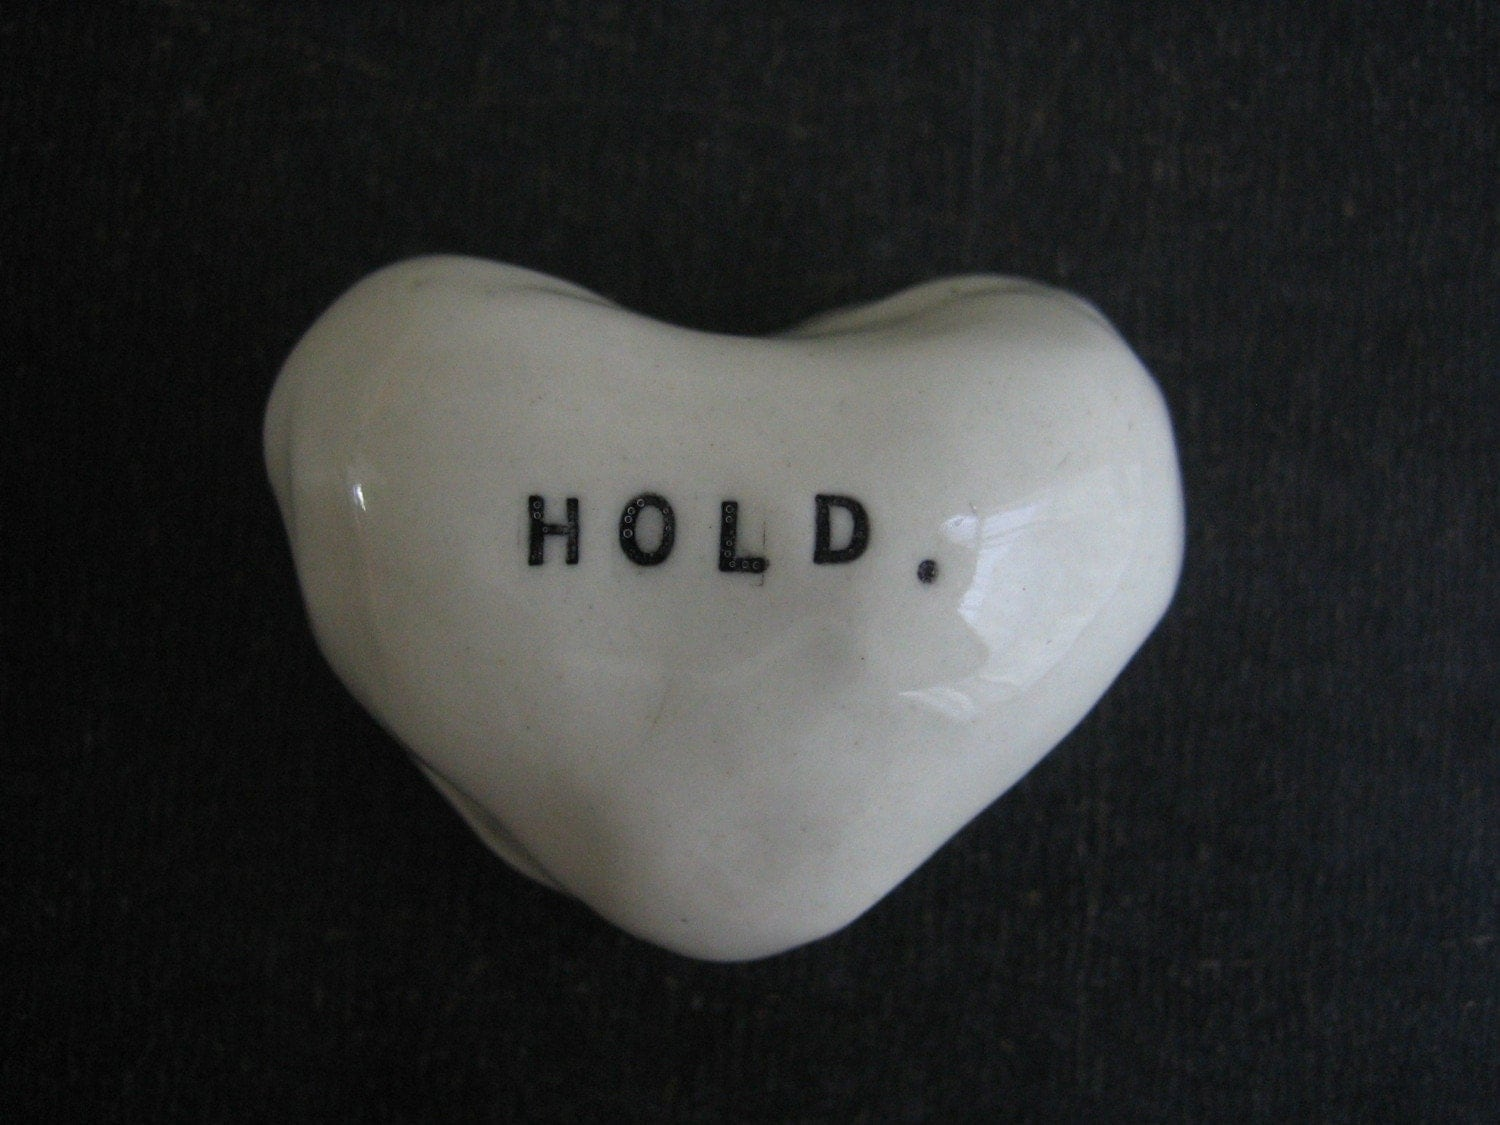 HOLD heart.